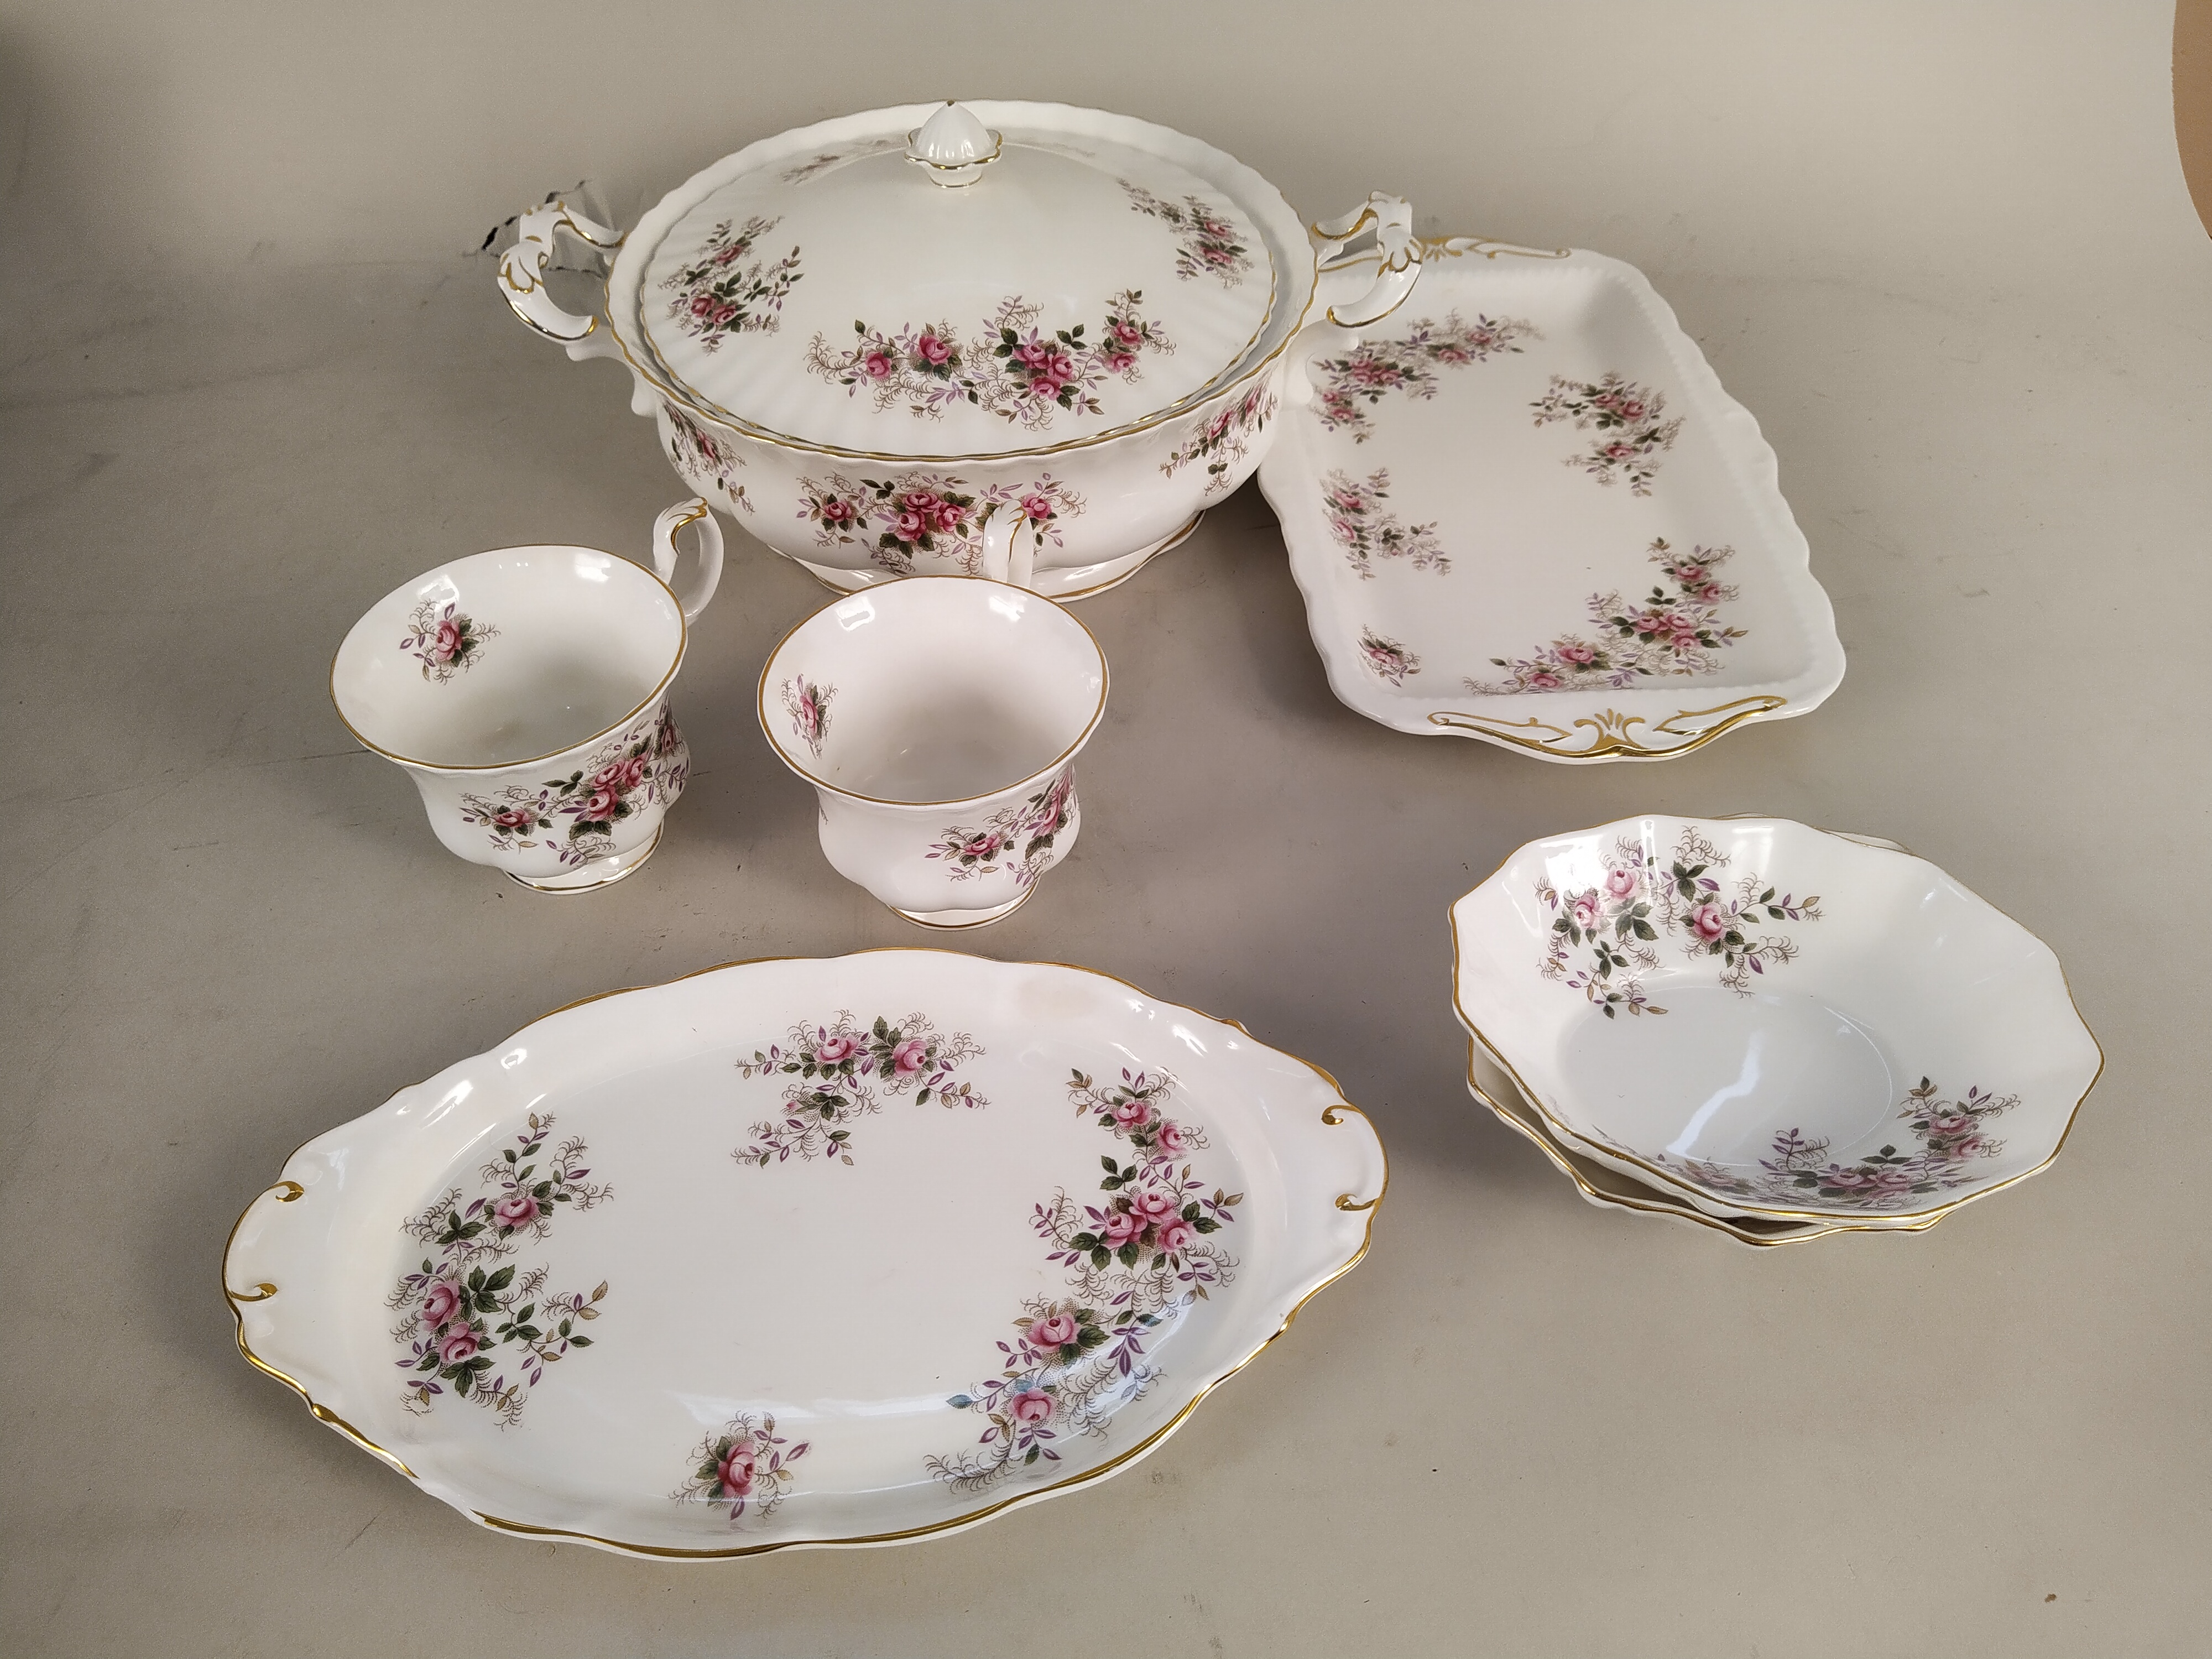 A large collection of Royal Albert 'Lavender Rose' tea and dinner wares